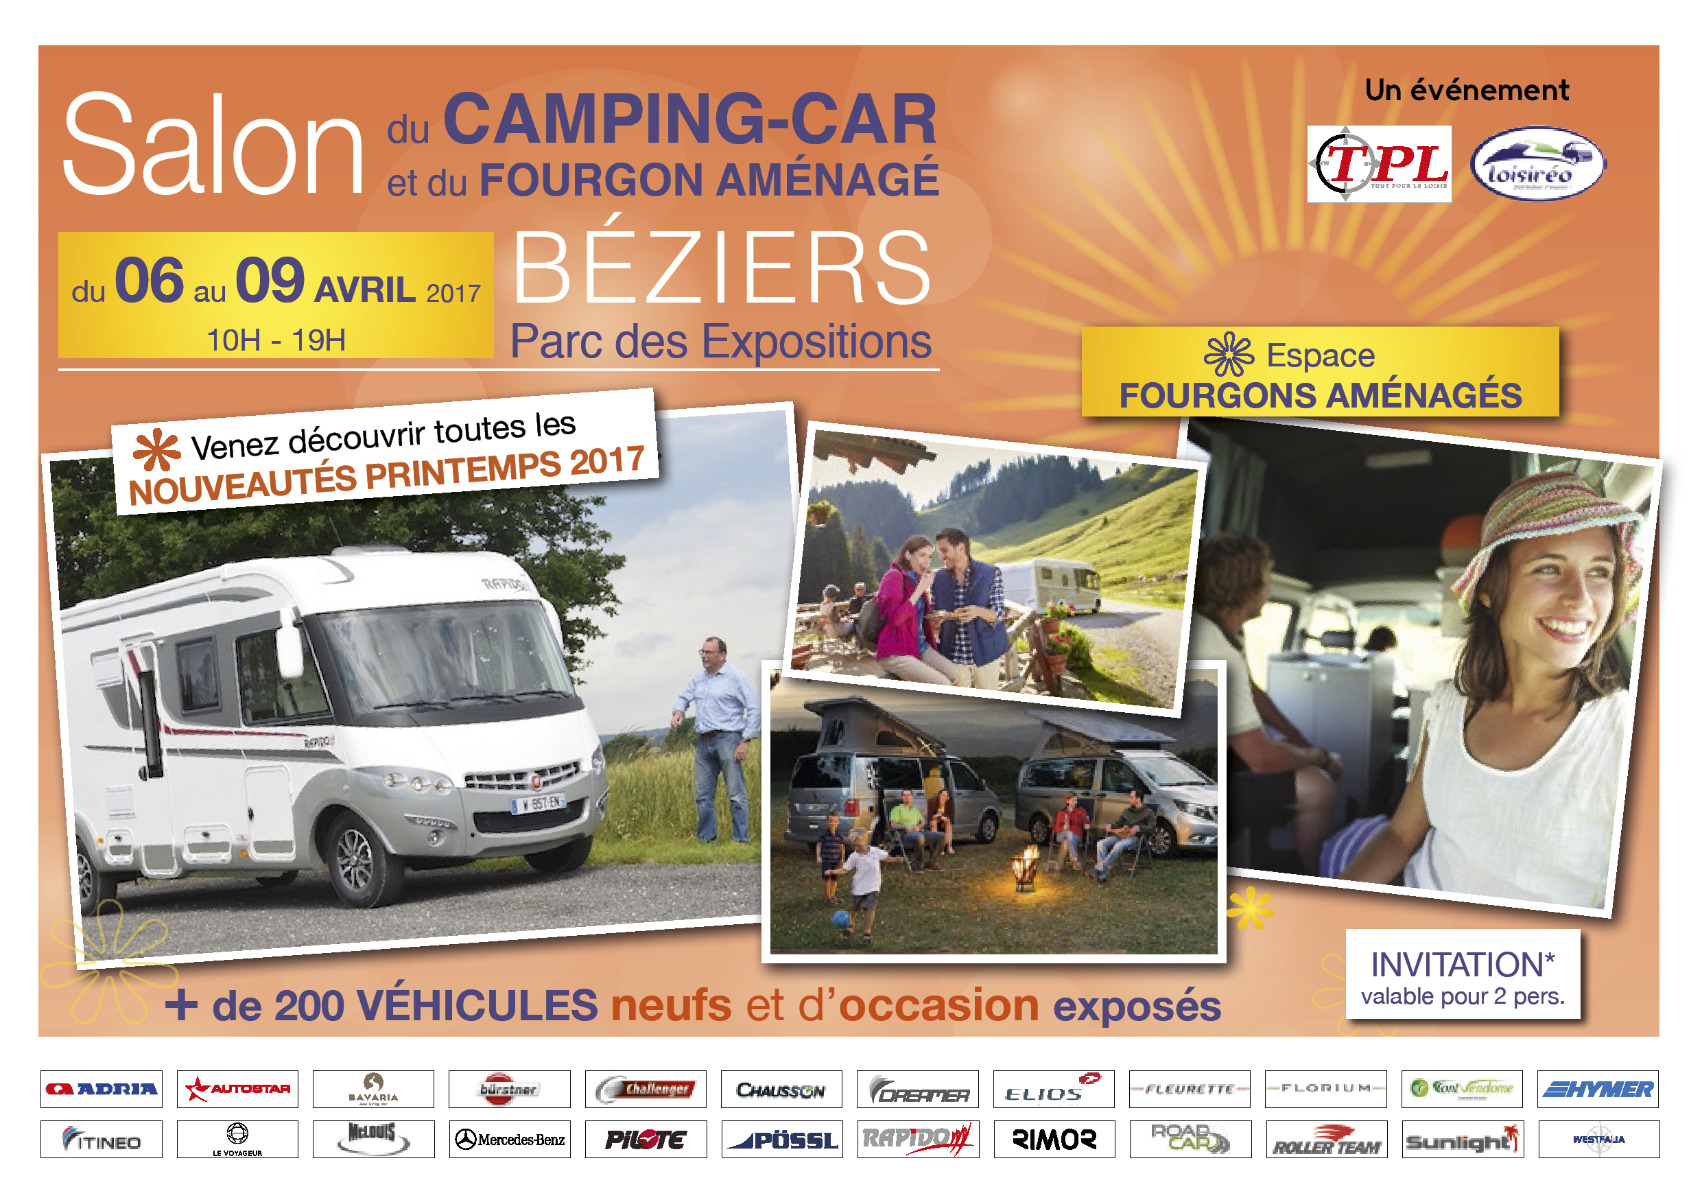 Camping car beziers